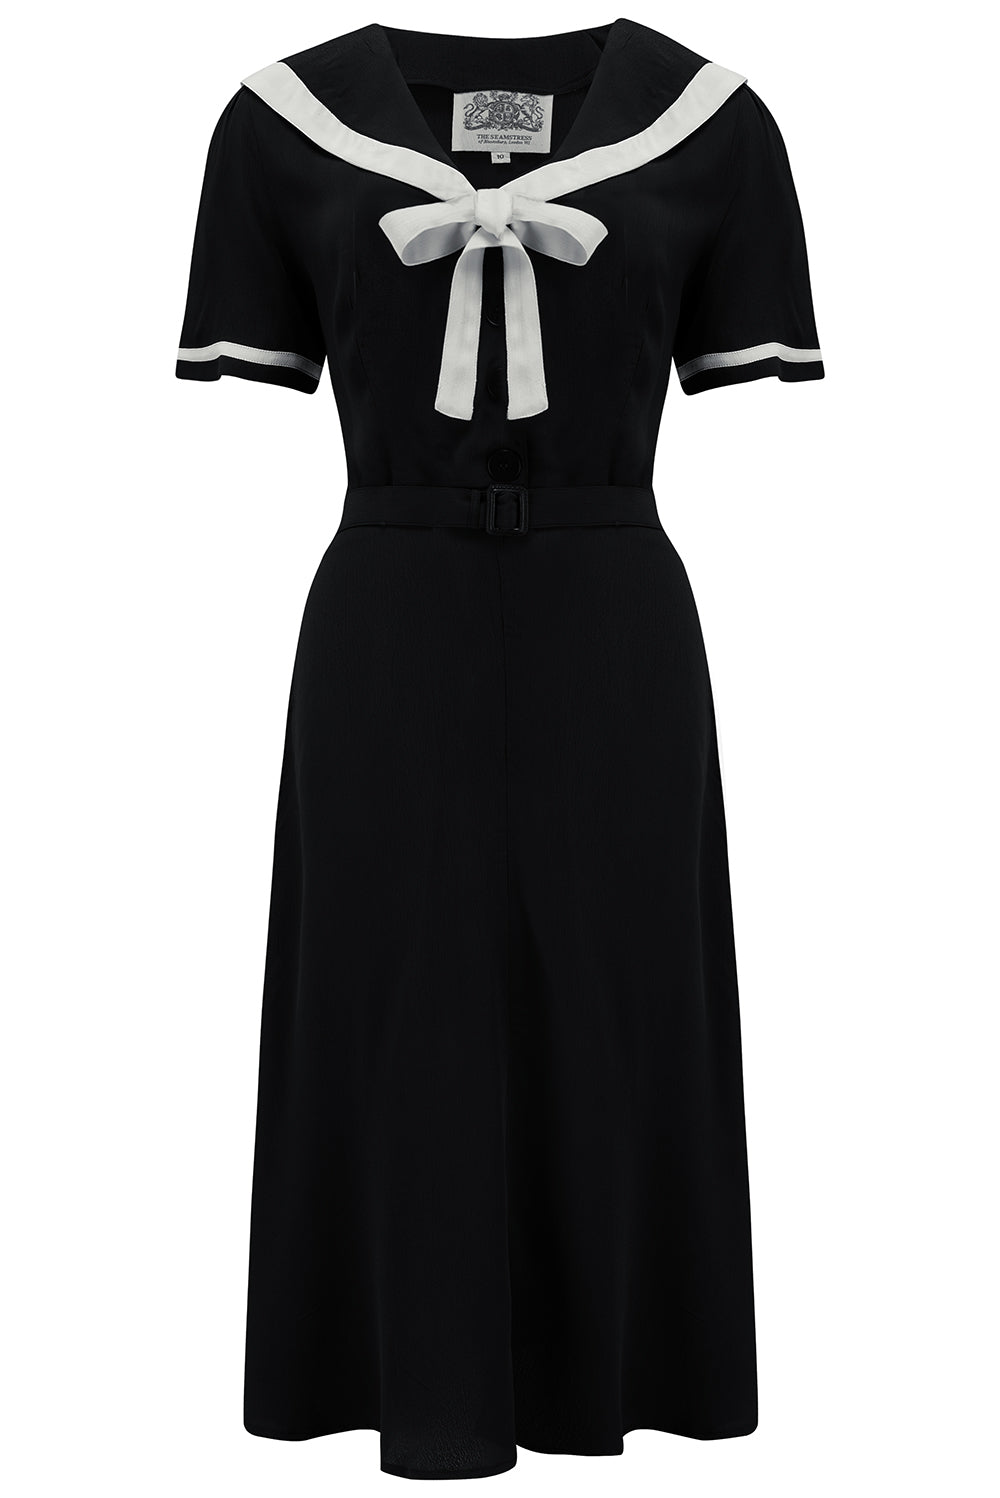 Patti Dress In 1940s Solid Black With Contrast Collar, Authentic true vintage style - RocknRomance True 1940s & 1950s Vintage Style